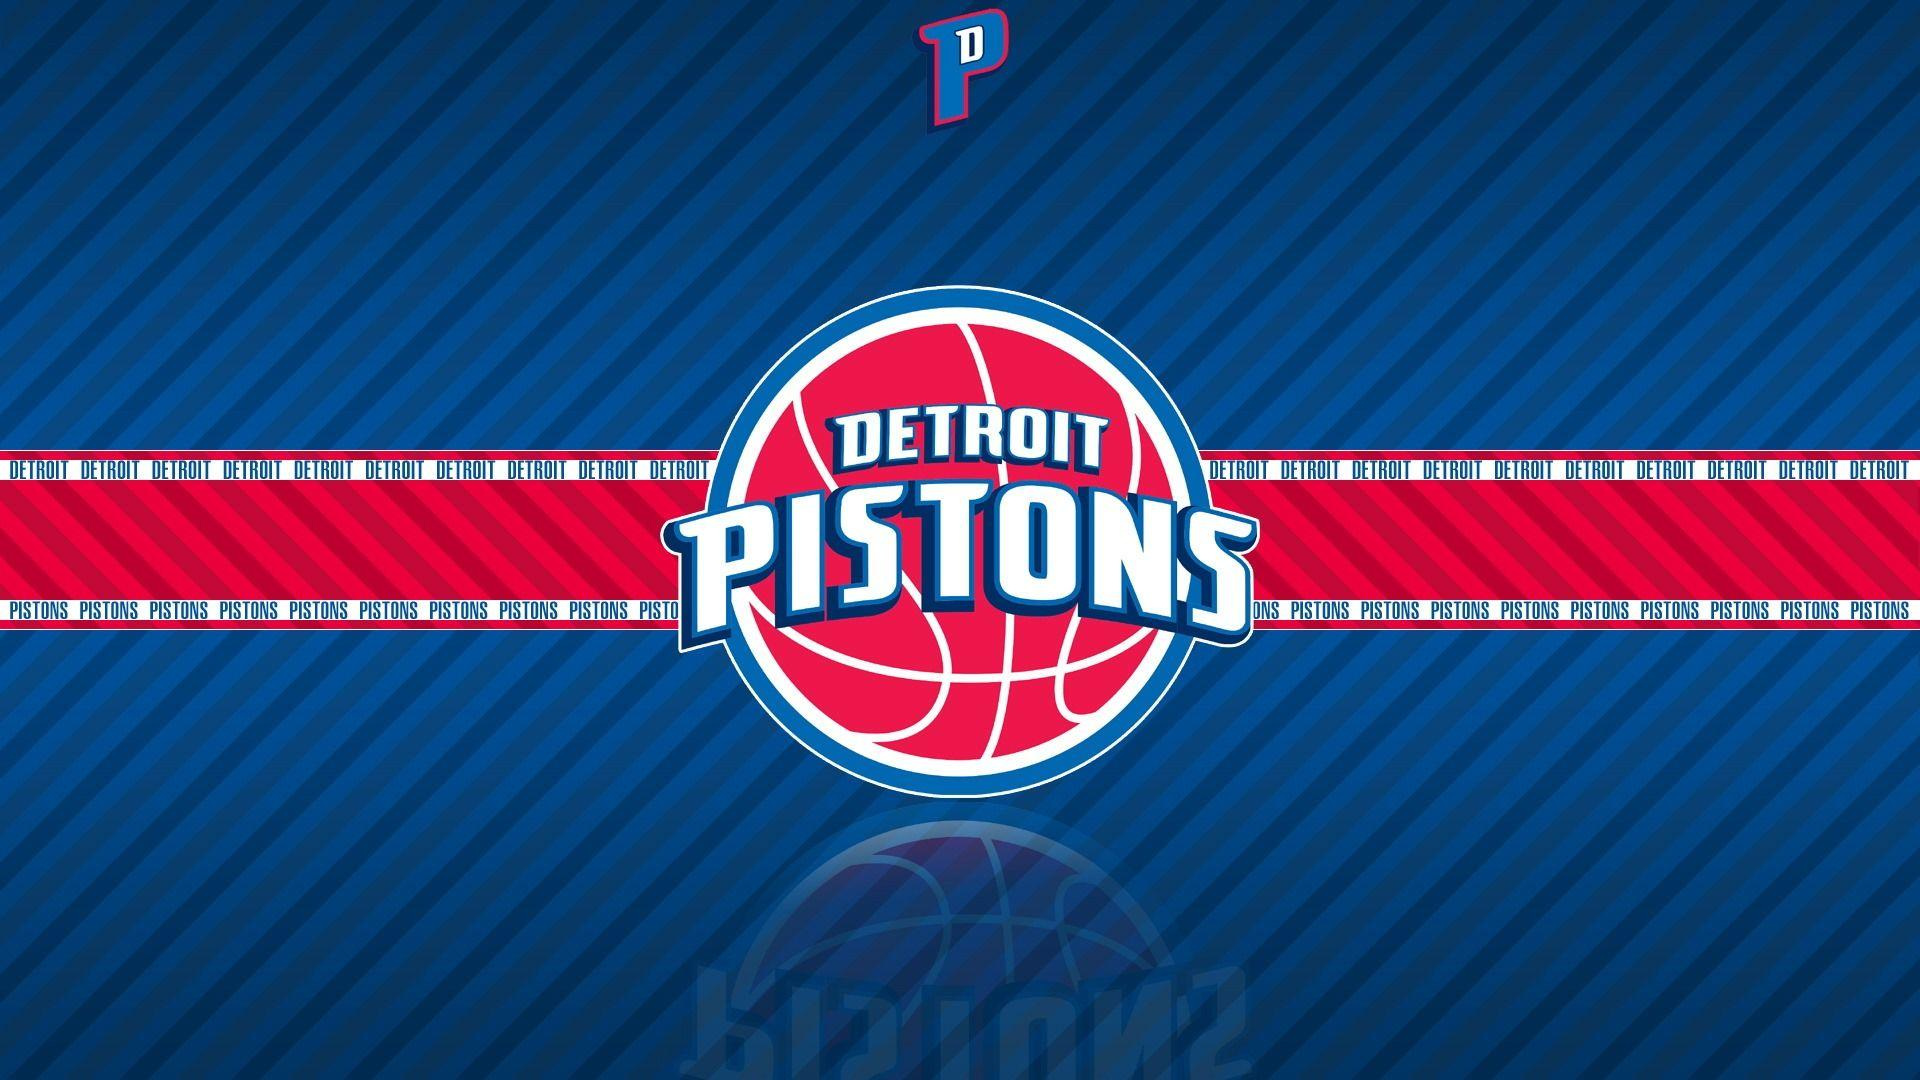 Detroit Pistons Wallpapers